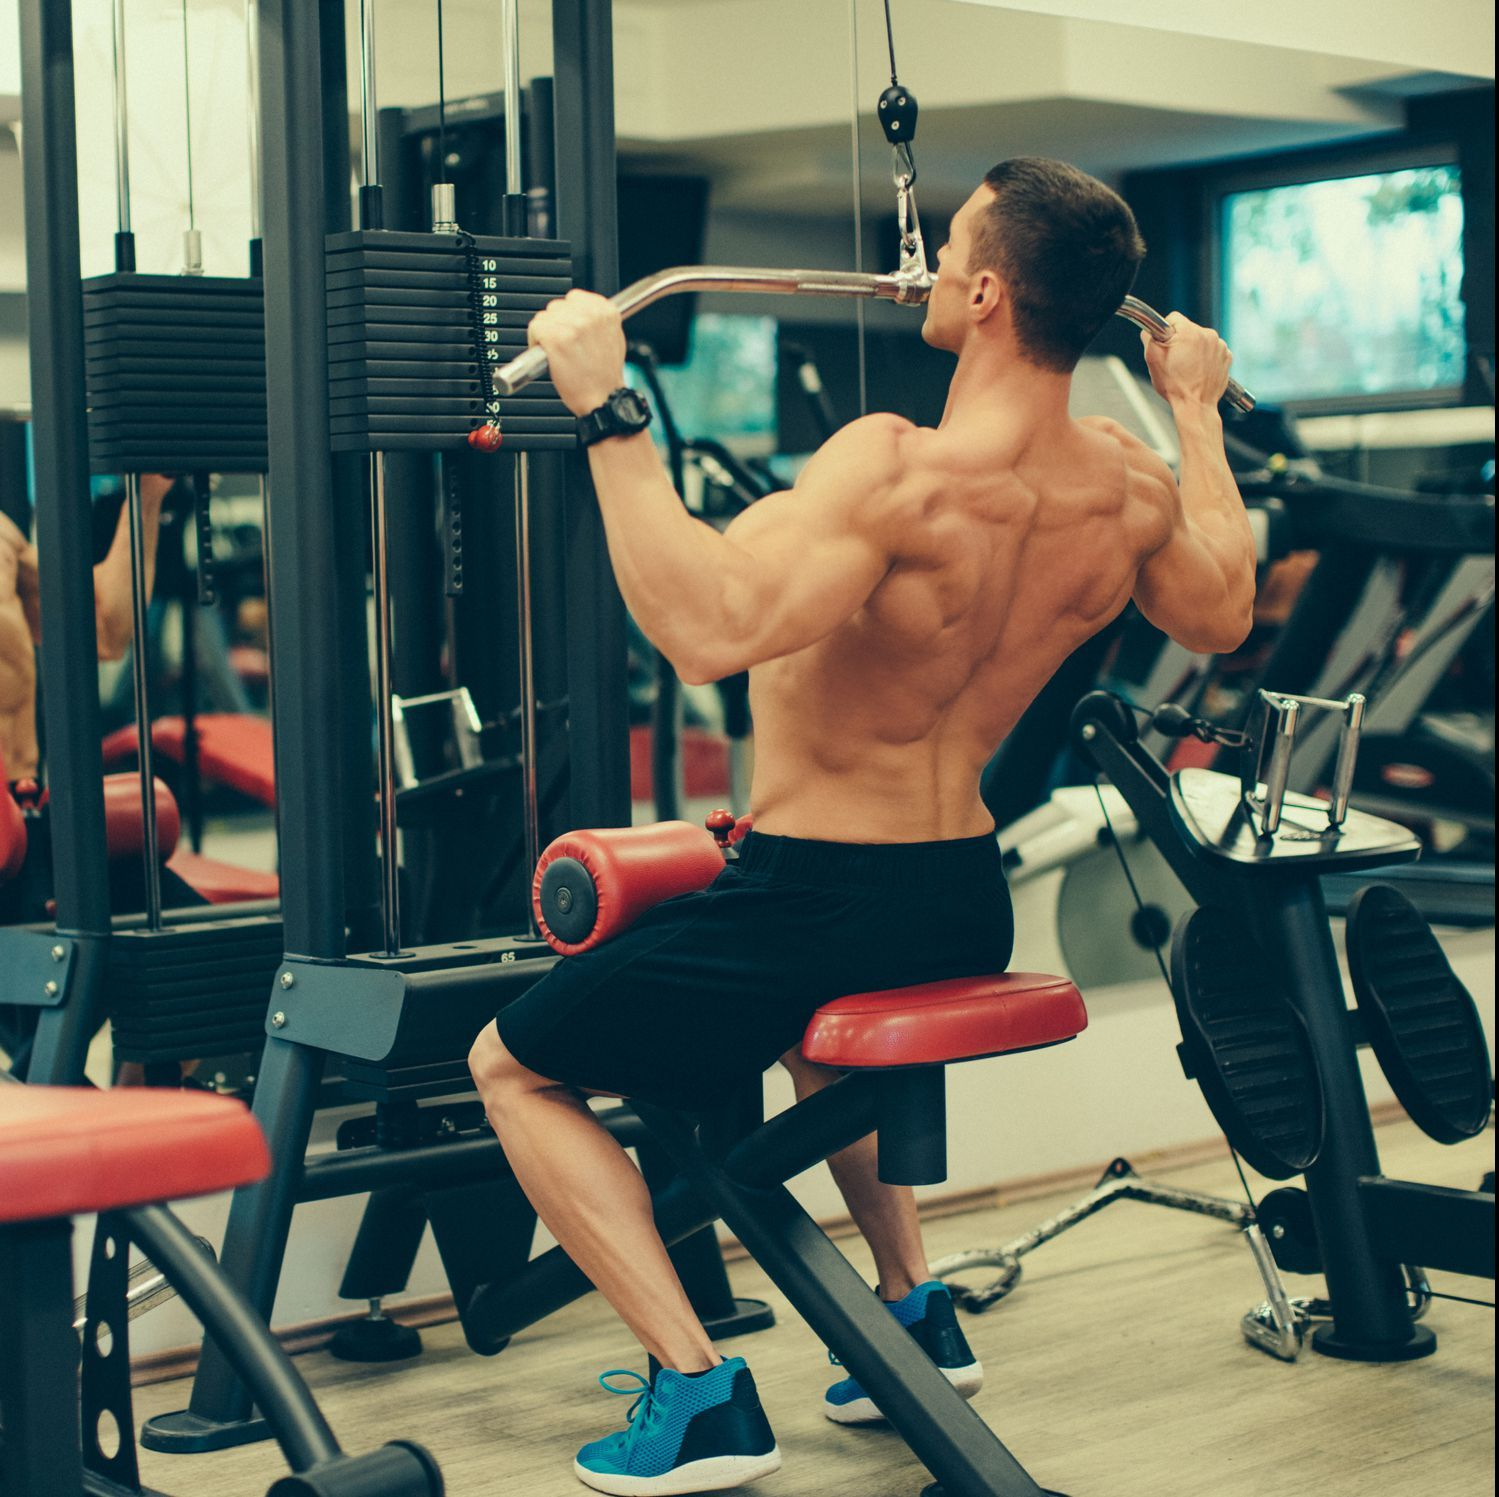 Want to Make Your Muscles Grow Faster? Just Focus.